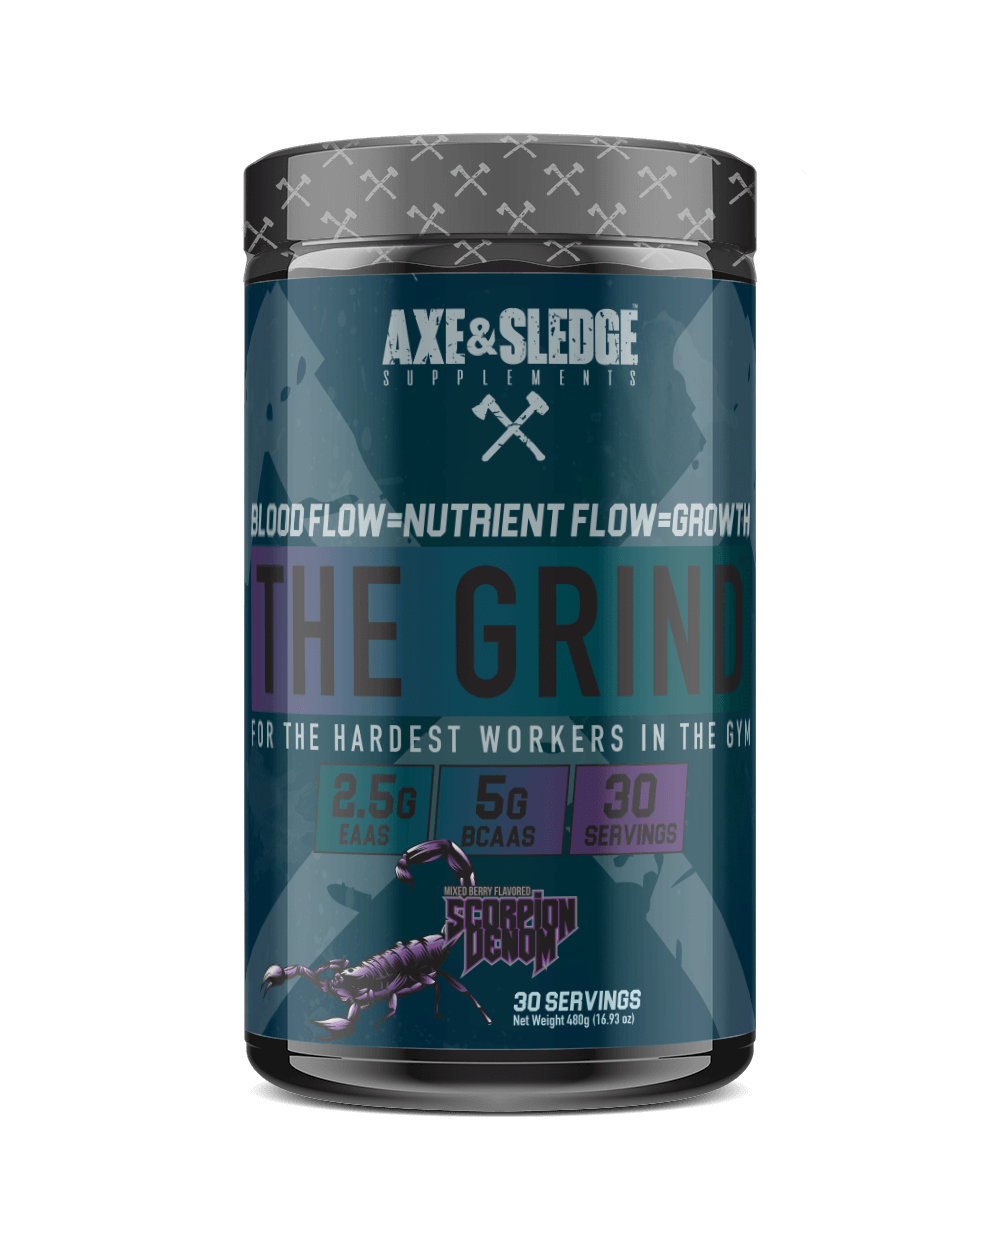 Grind scorpion high-end supps